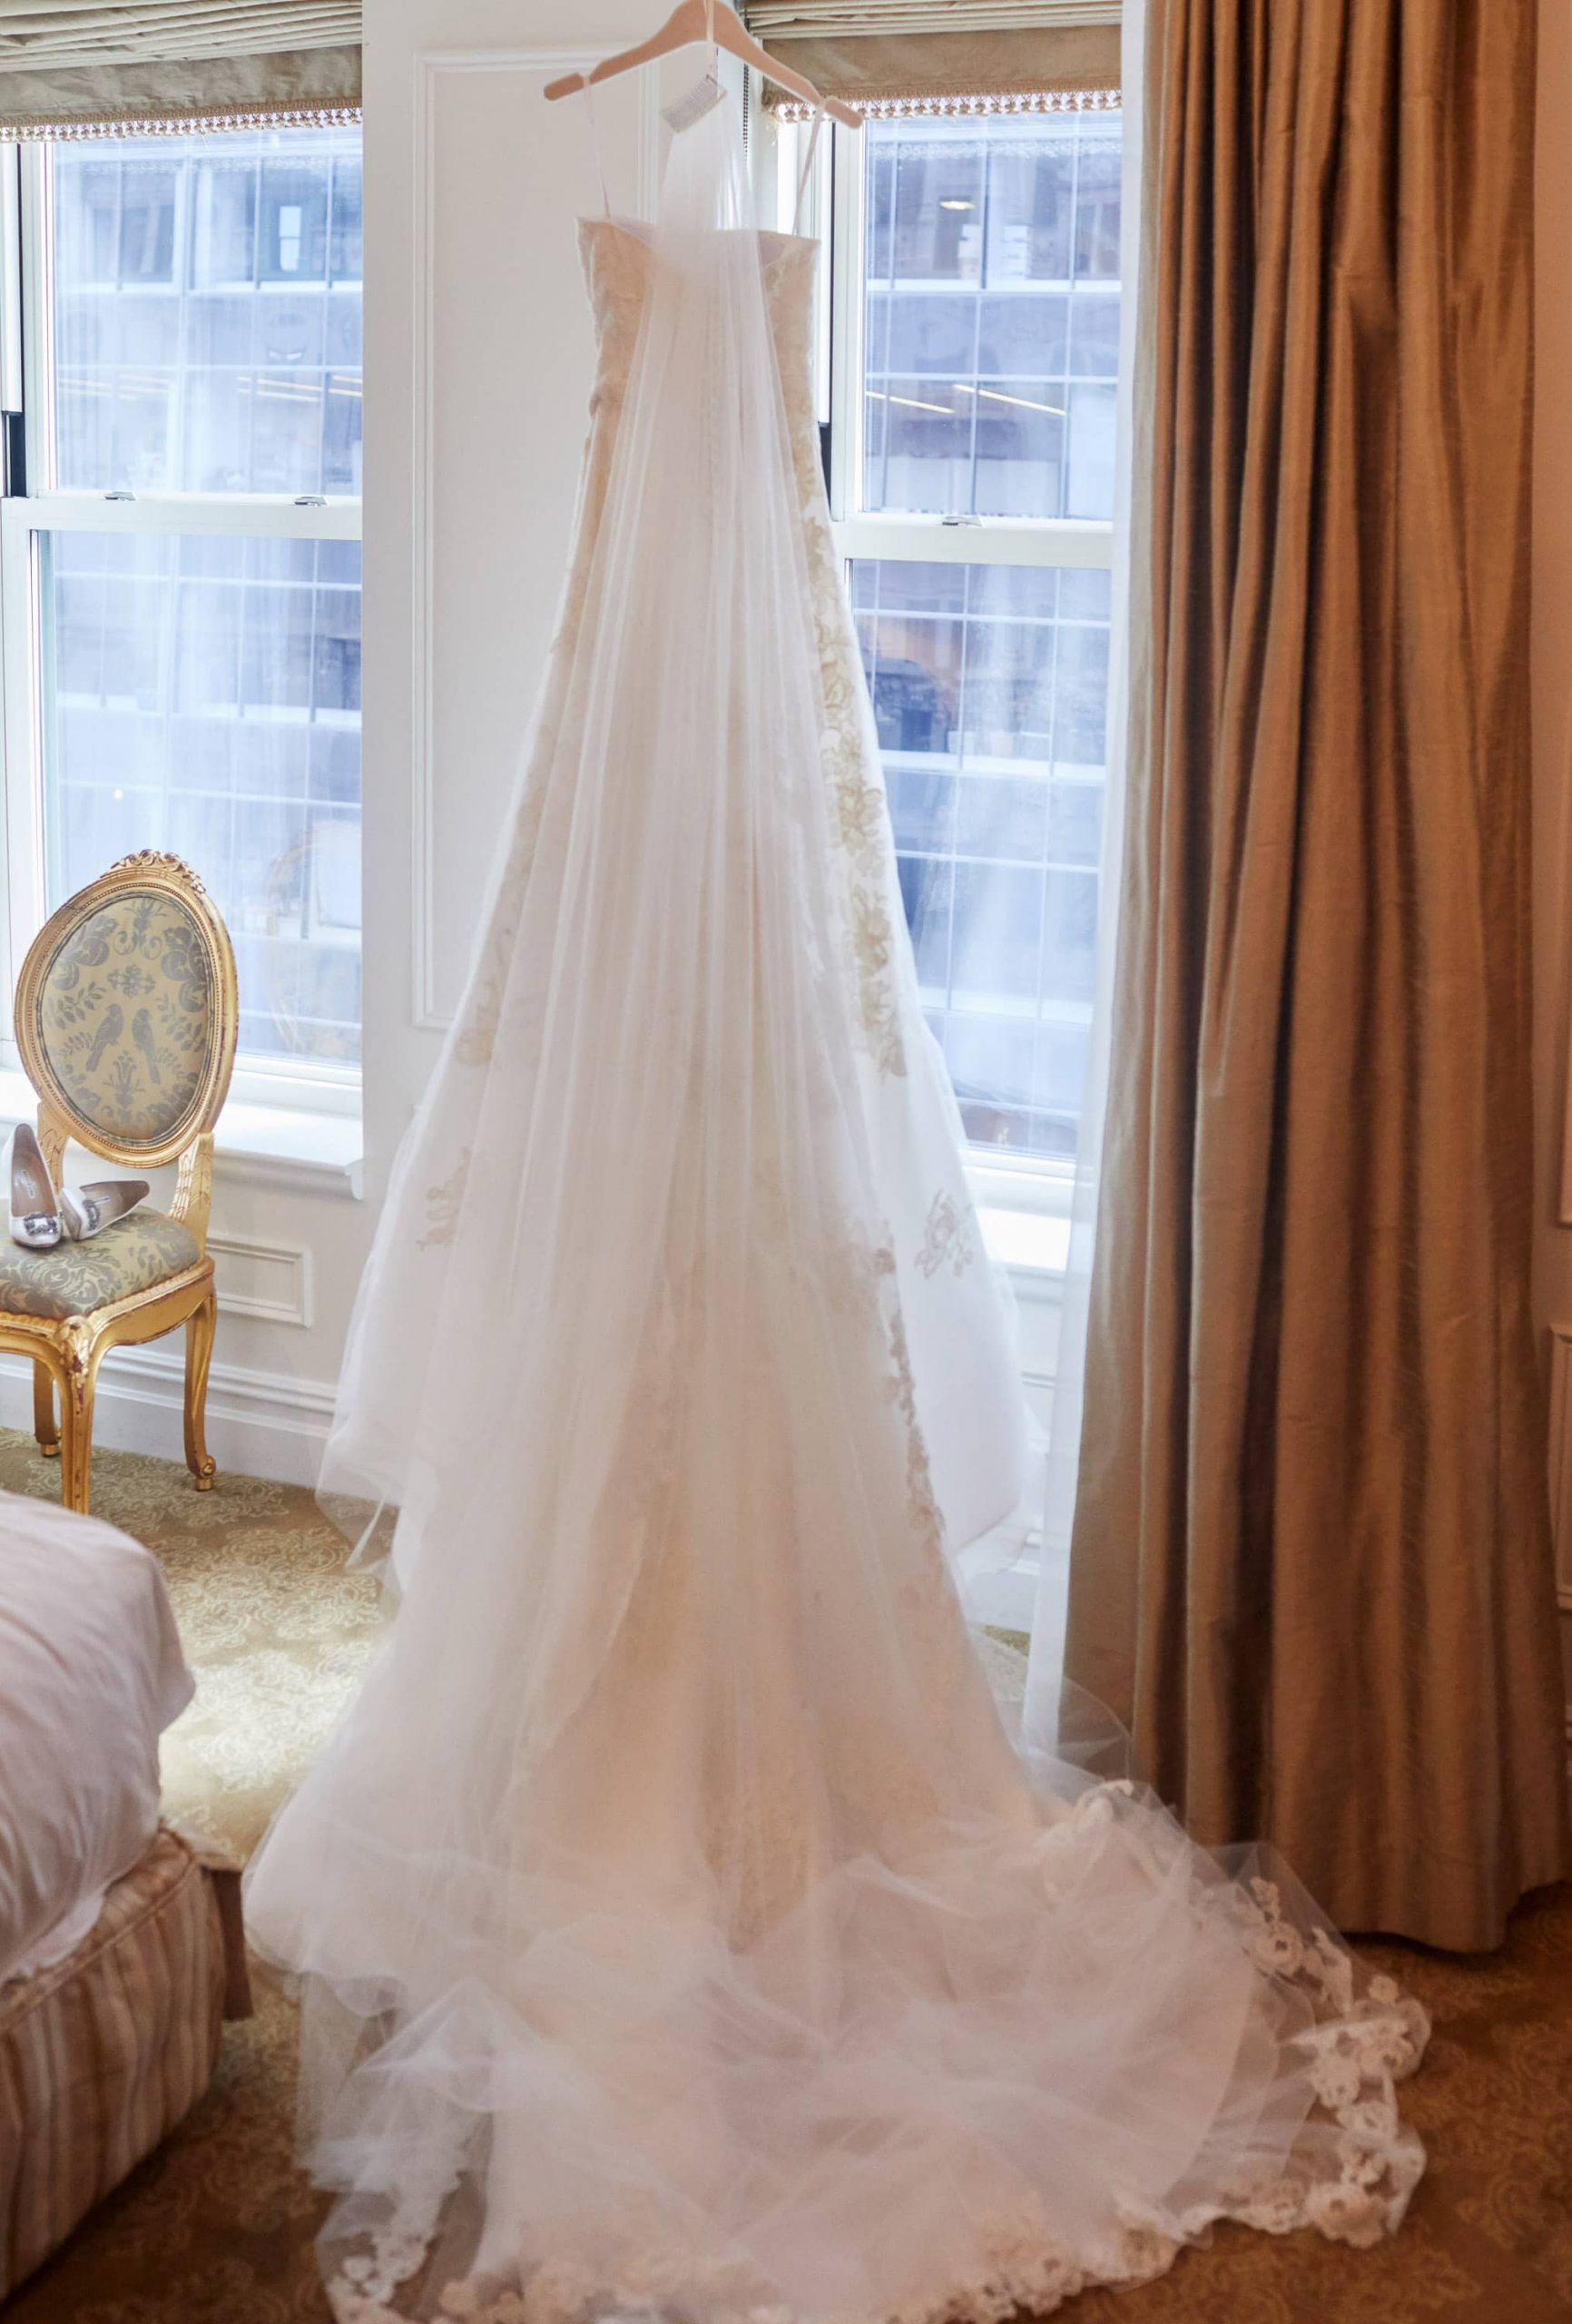 Bride's wedding dress at this classic autumn wedding at The Plaza in NYC | Photo by Christian Oth Studio